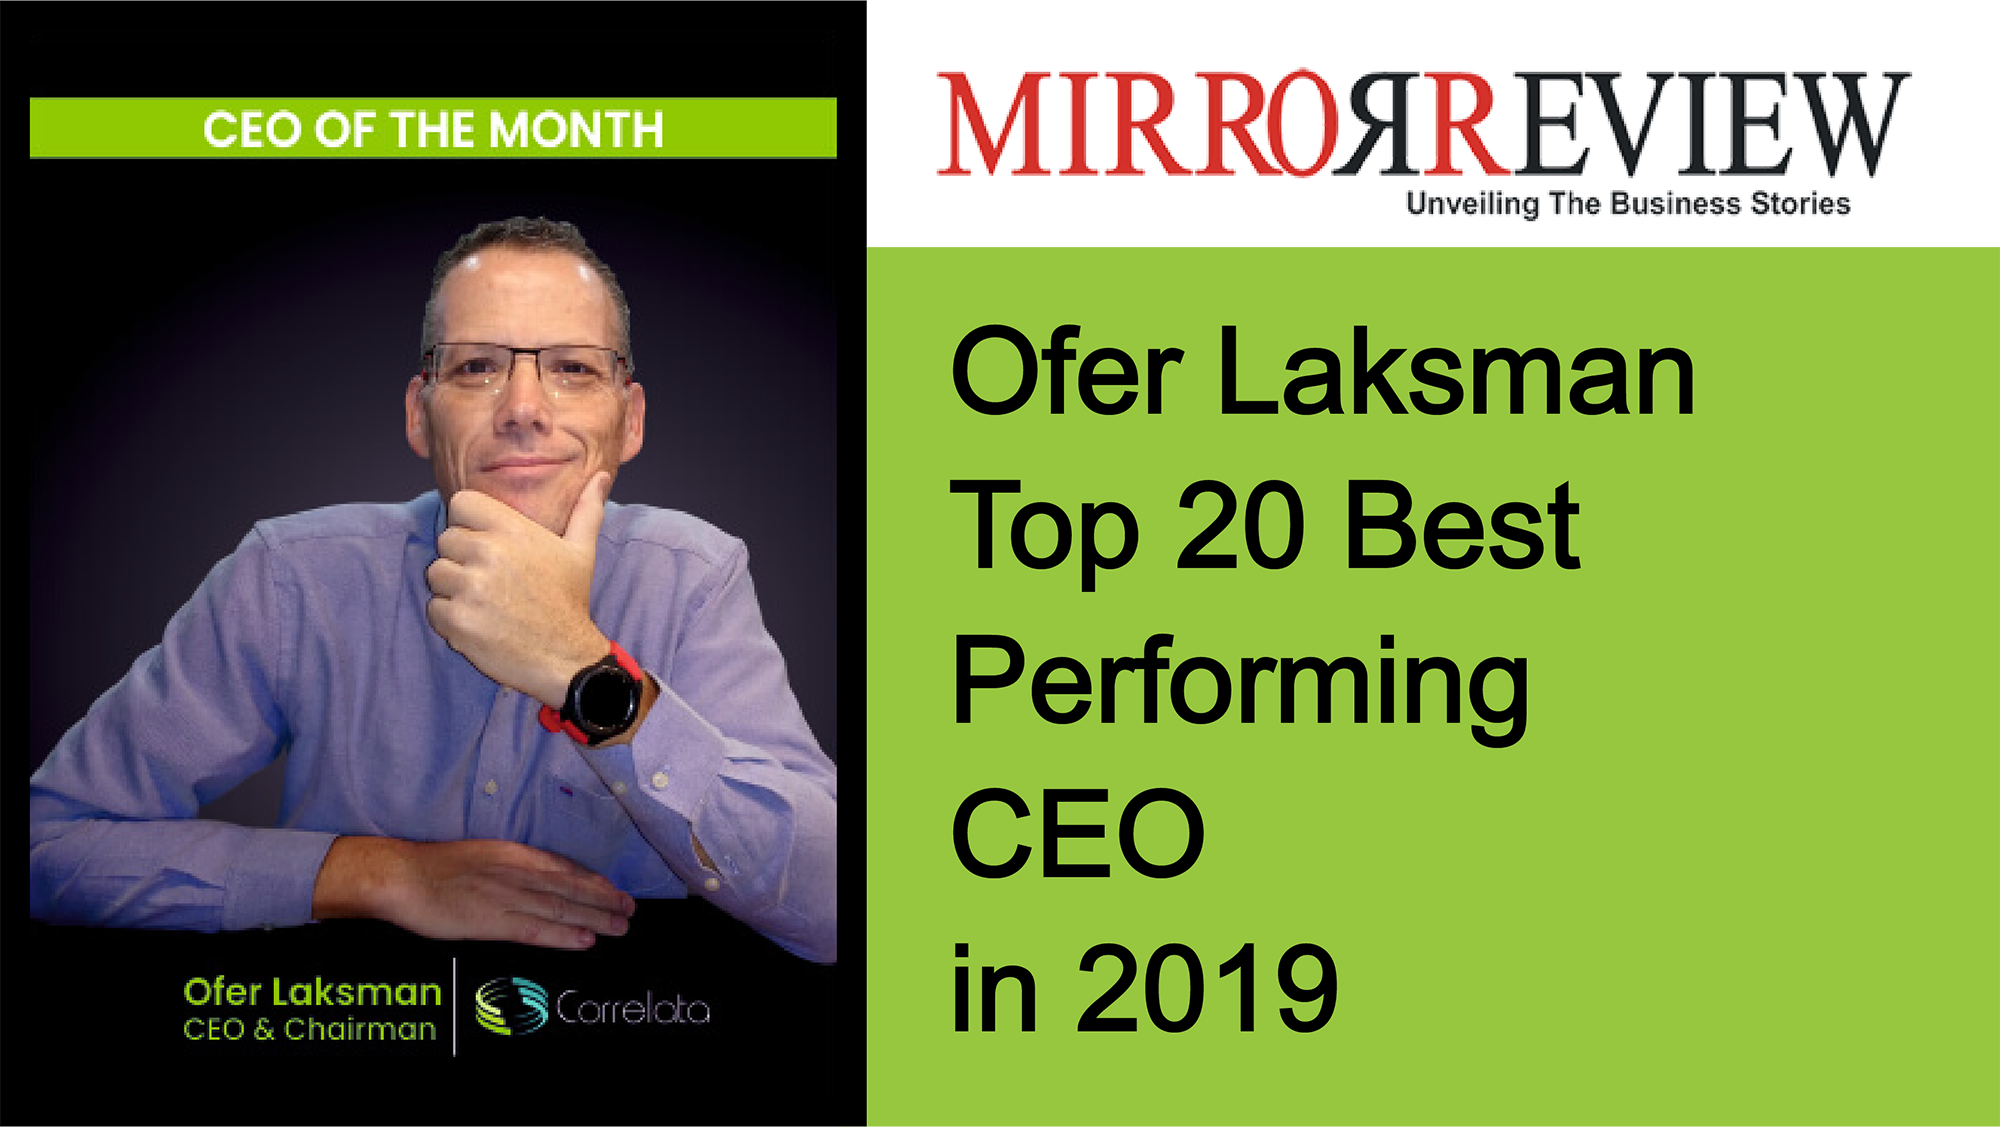 Our CEO Made the Cover of Mirror Review – We are Incredibly Honored!